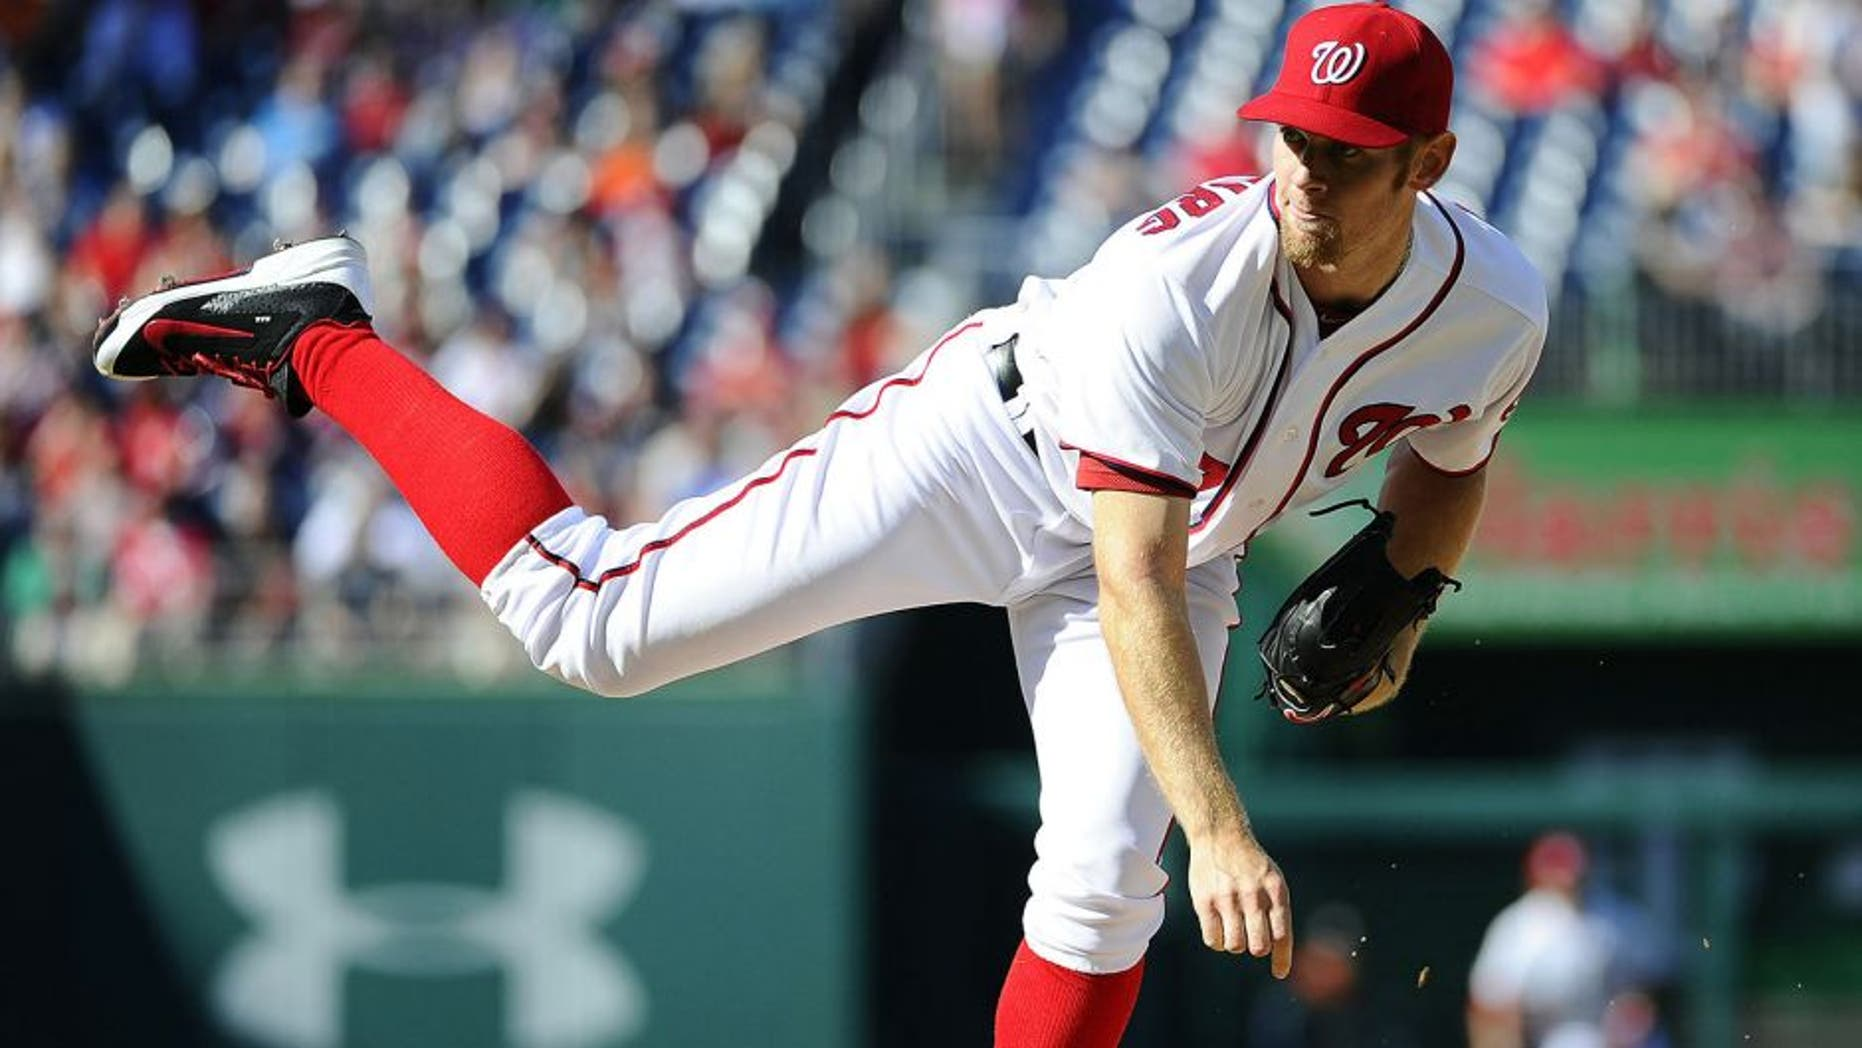 Apr 10, 2014; Washington, DC, USA; Washington Nationals pitcher Stephen Strasburg (37) throws during the second inning against the Miami Marlins at Nationals Park. Mandatory Credit: Brad Mills-USA TODAY Sports